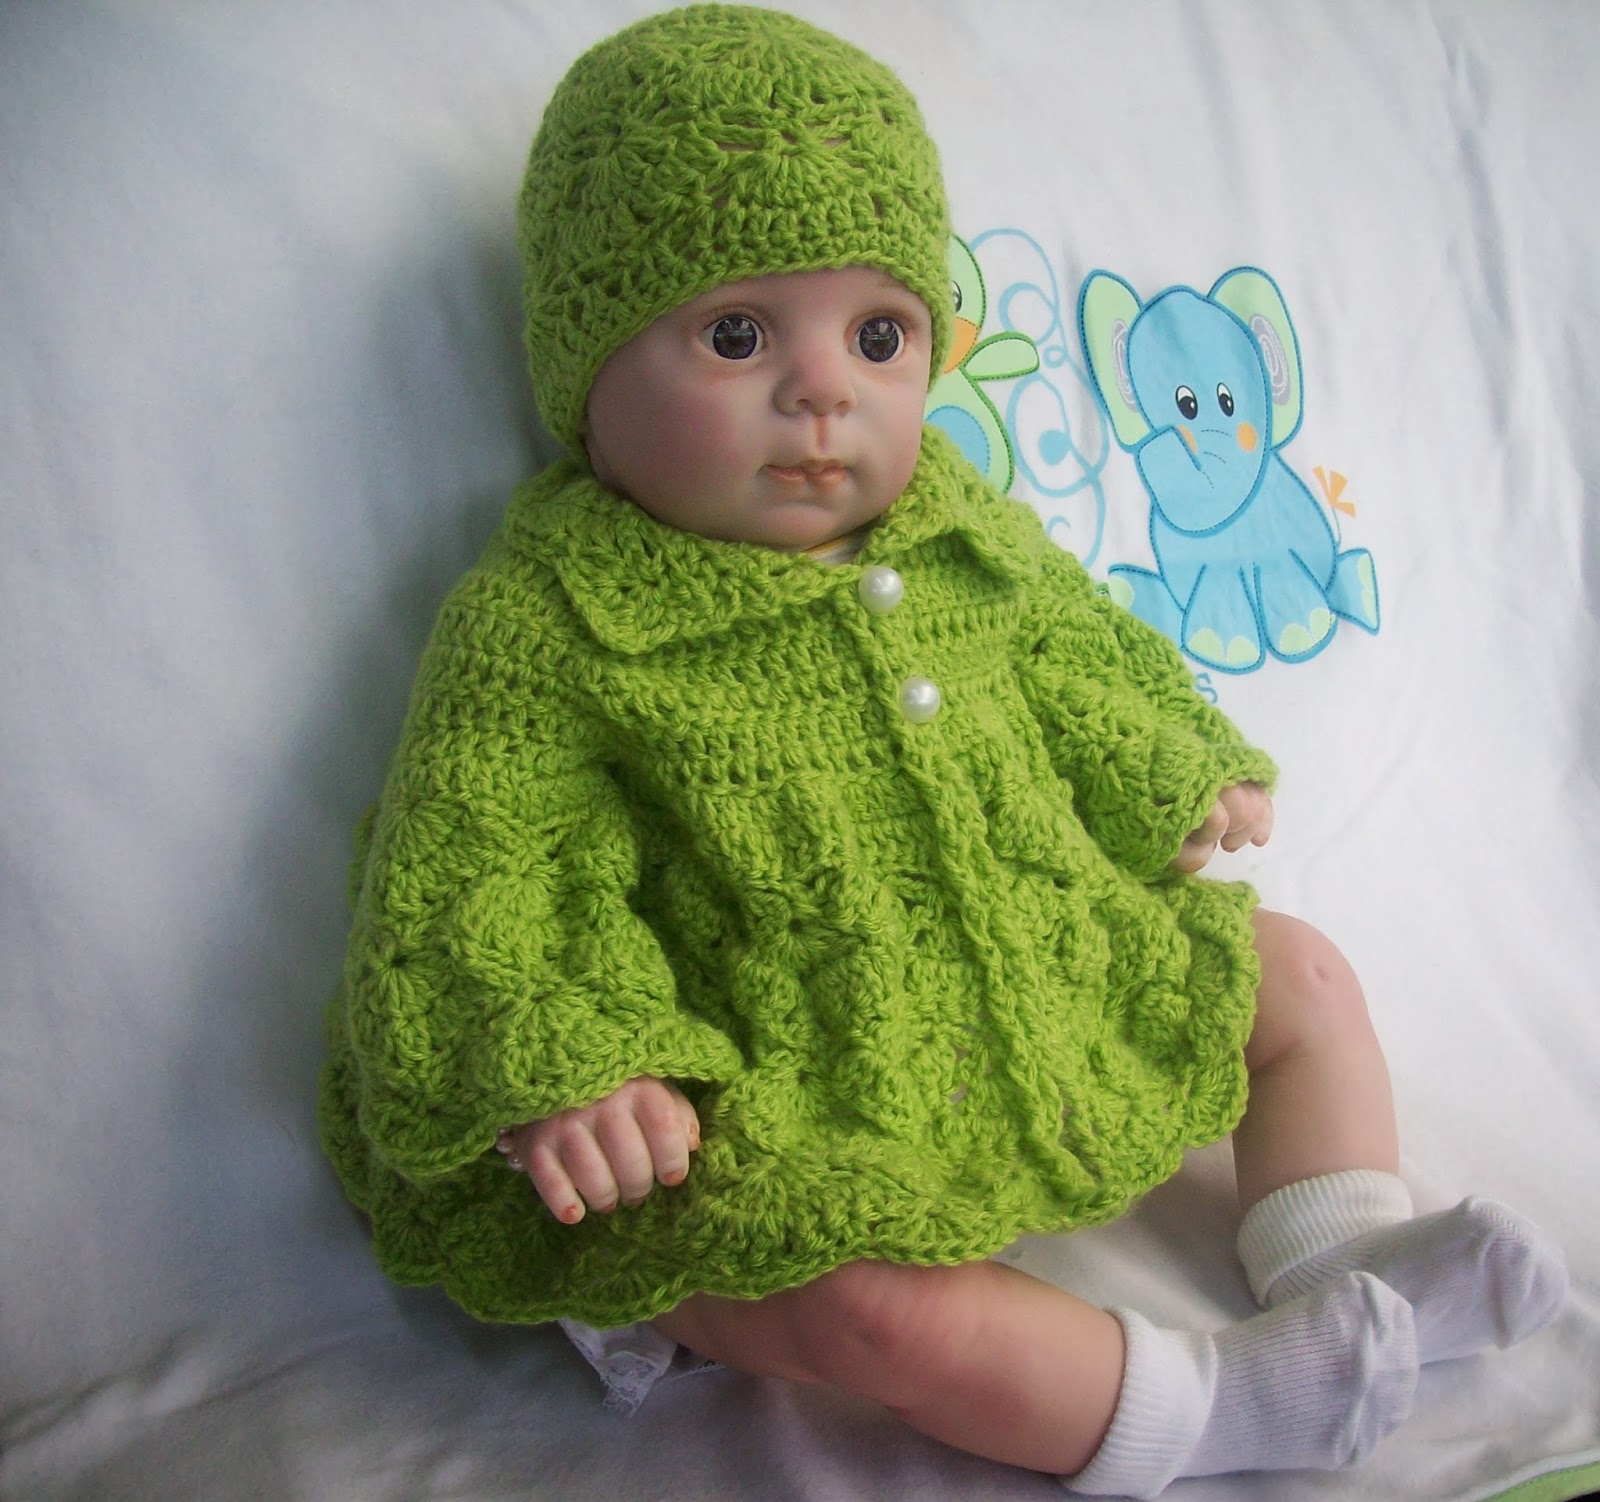 Free Pattern Crochet Sweater : Free Crochet Patterns By Cats-Rockin-Crochet